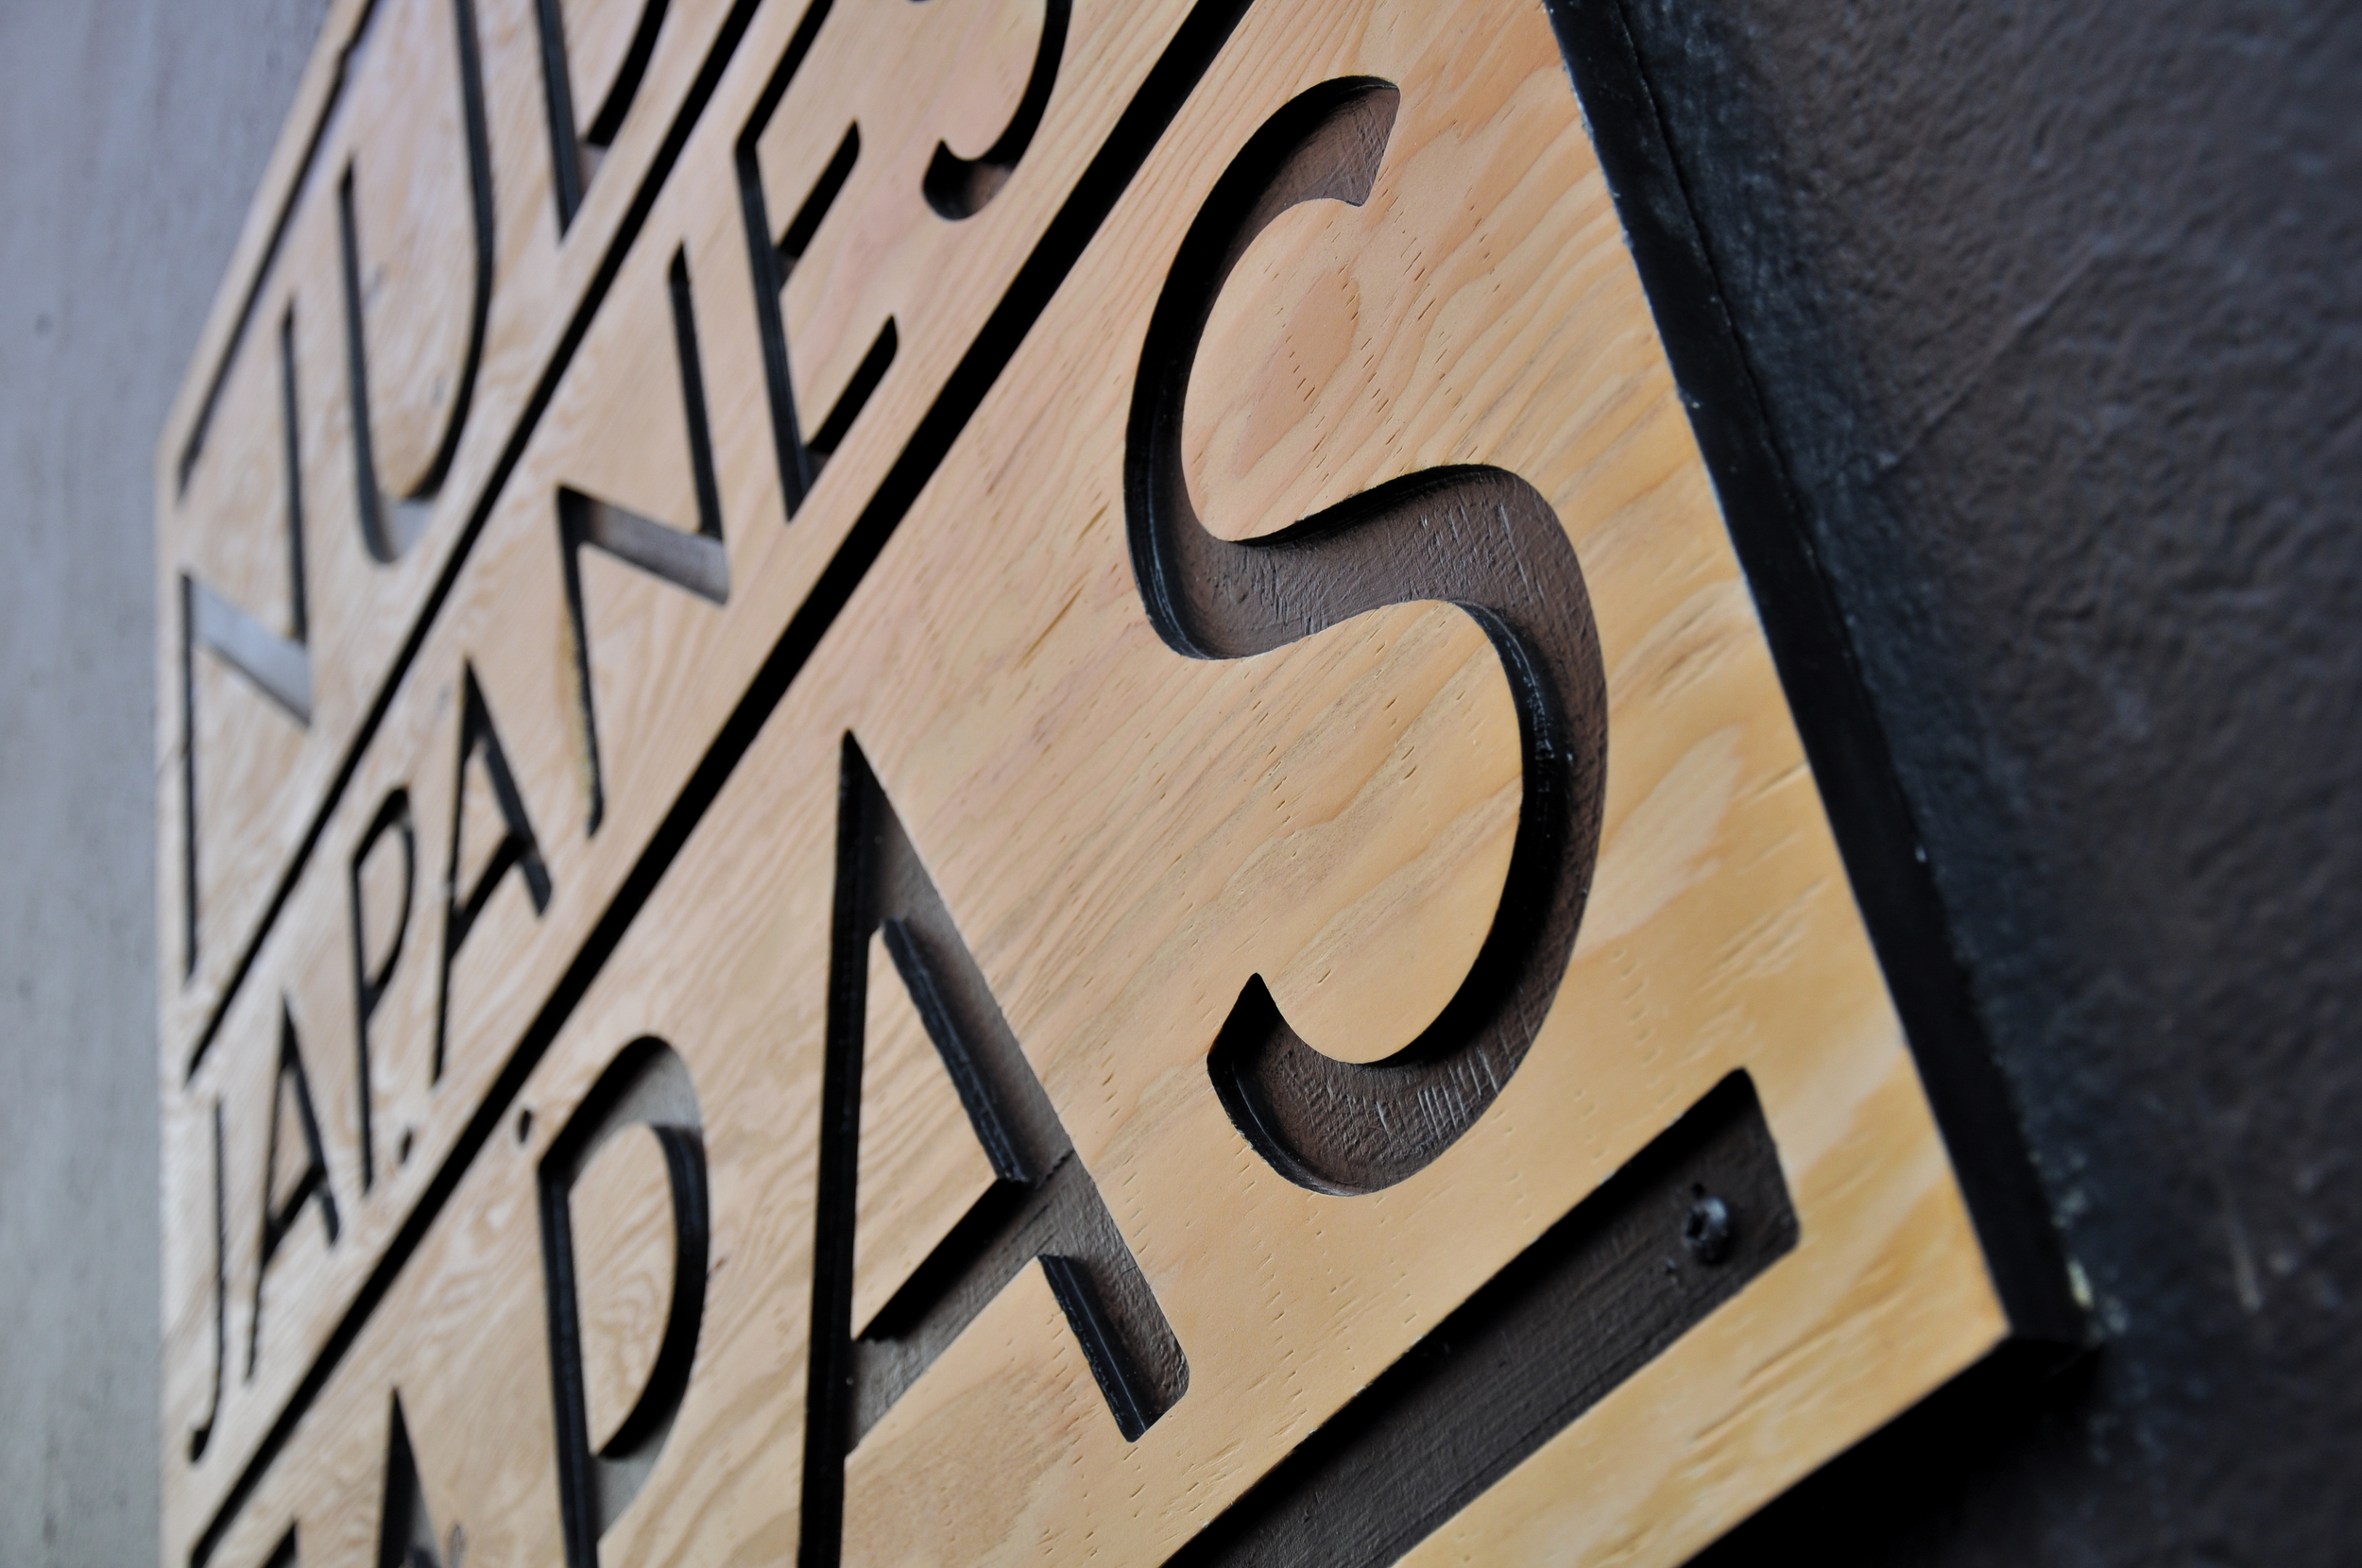 Standard plywood was cut using a CNC router, then painted and sealed. These signs are a welcoming preview of the modern aesthetic that continues inside the restaurant.